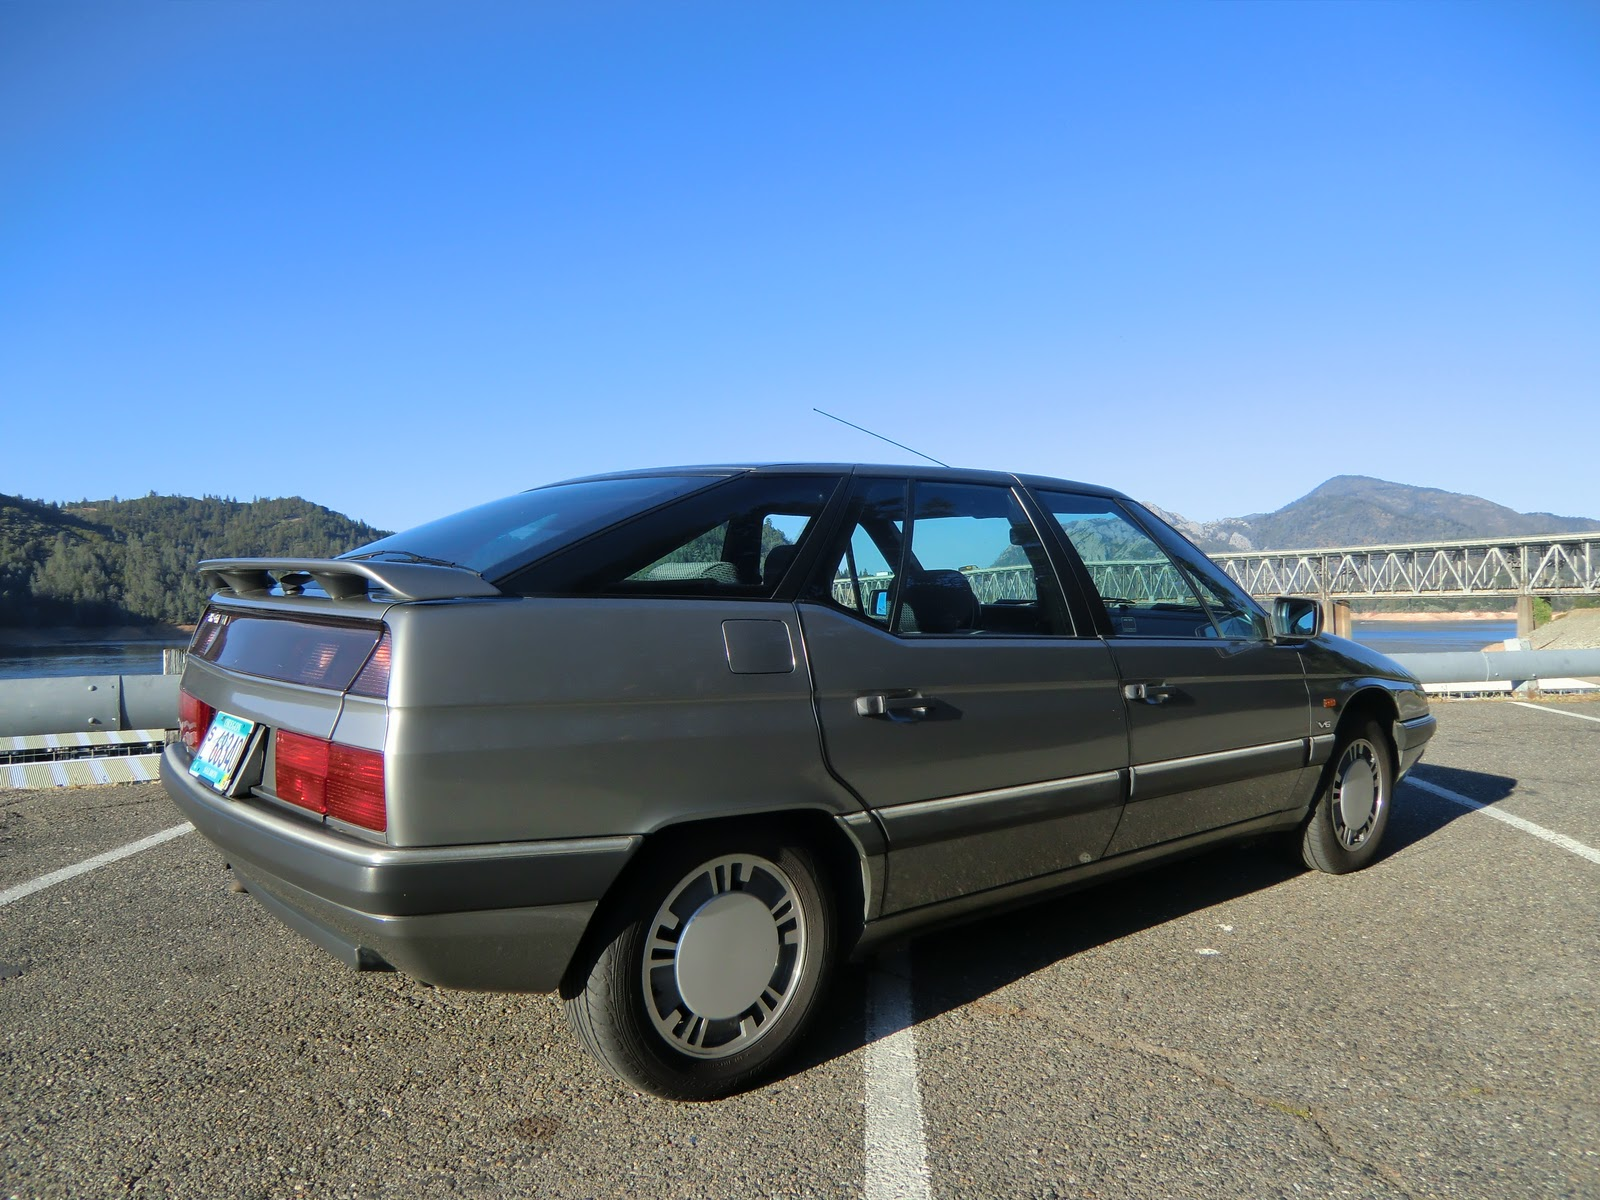 tamerlane 39 s thoughts road trip in a citroen xm